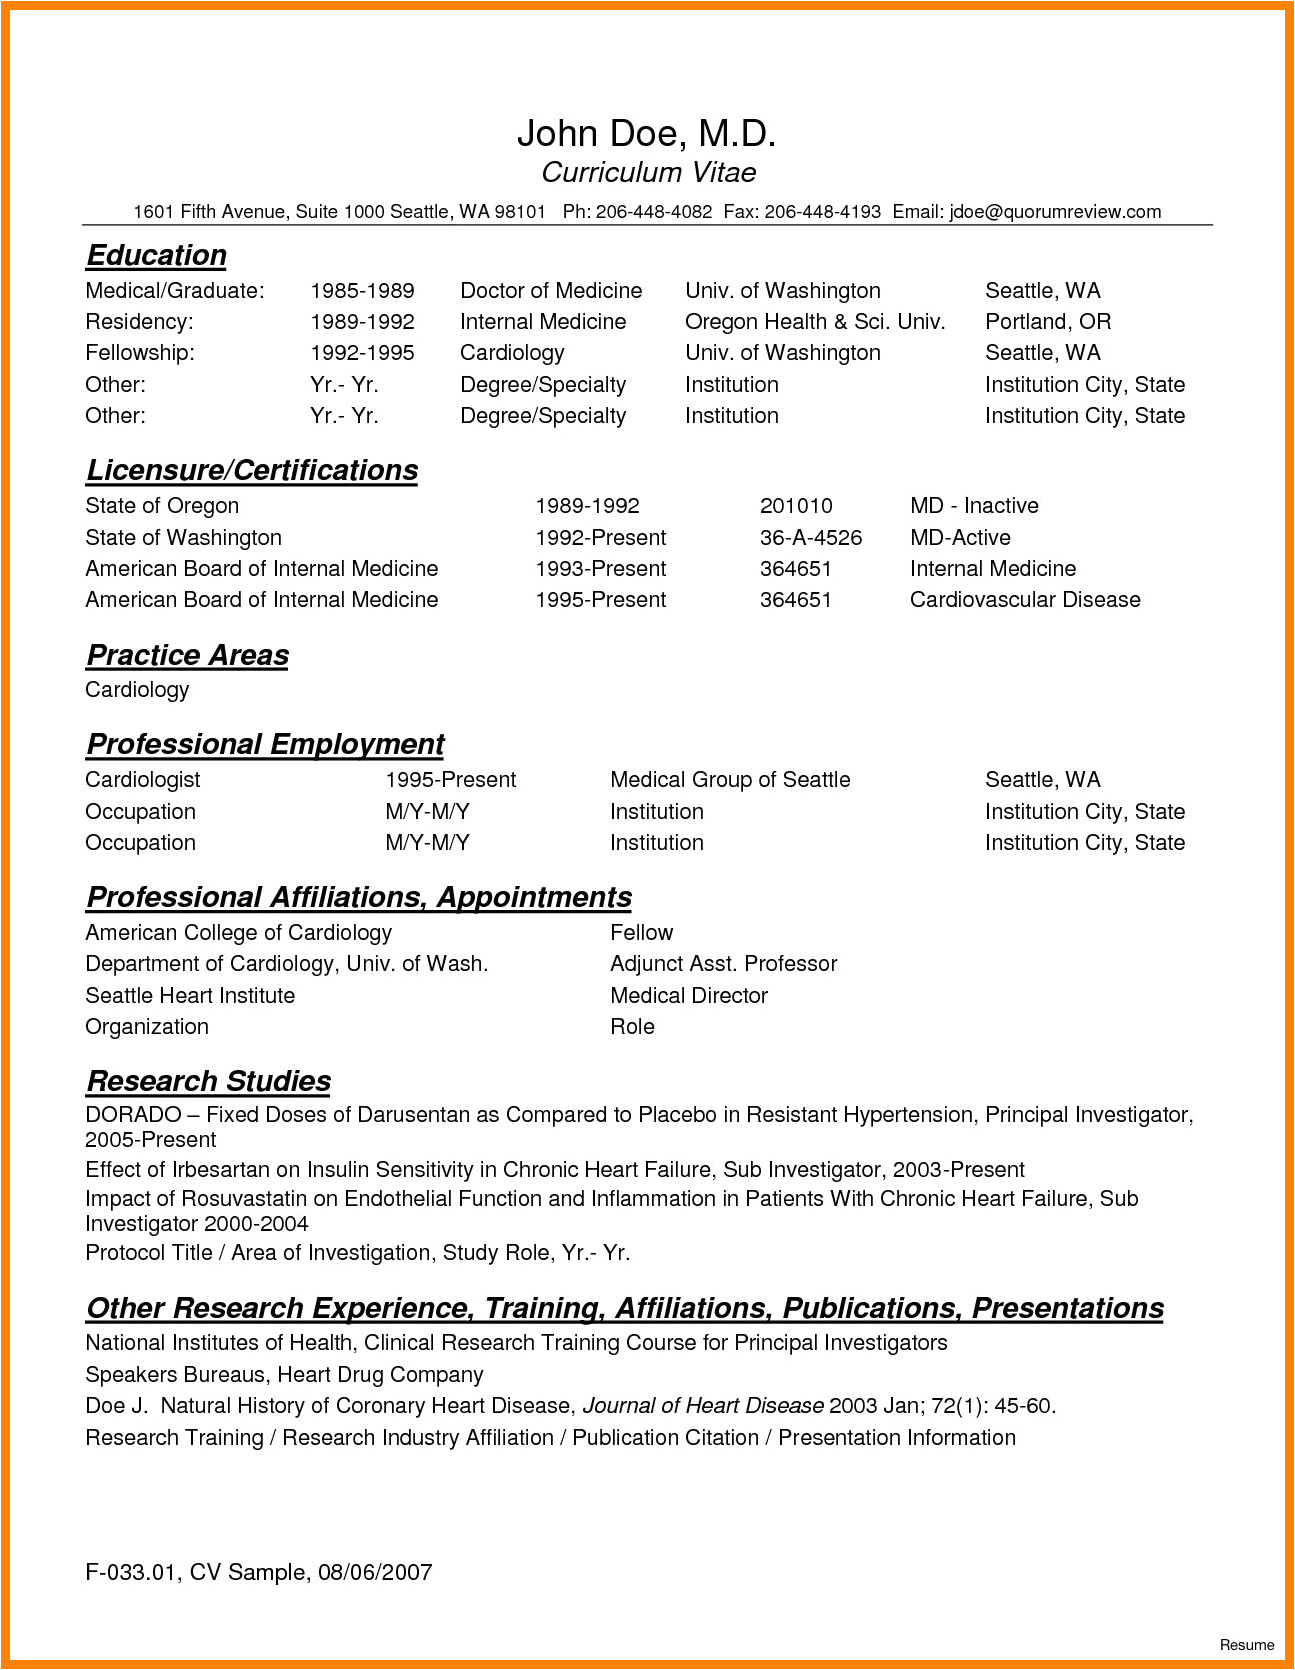 Cv Template for Physicians 8 Curriculum Vitae for Doctors Sample theorynpractice